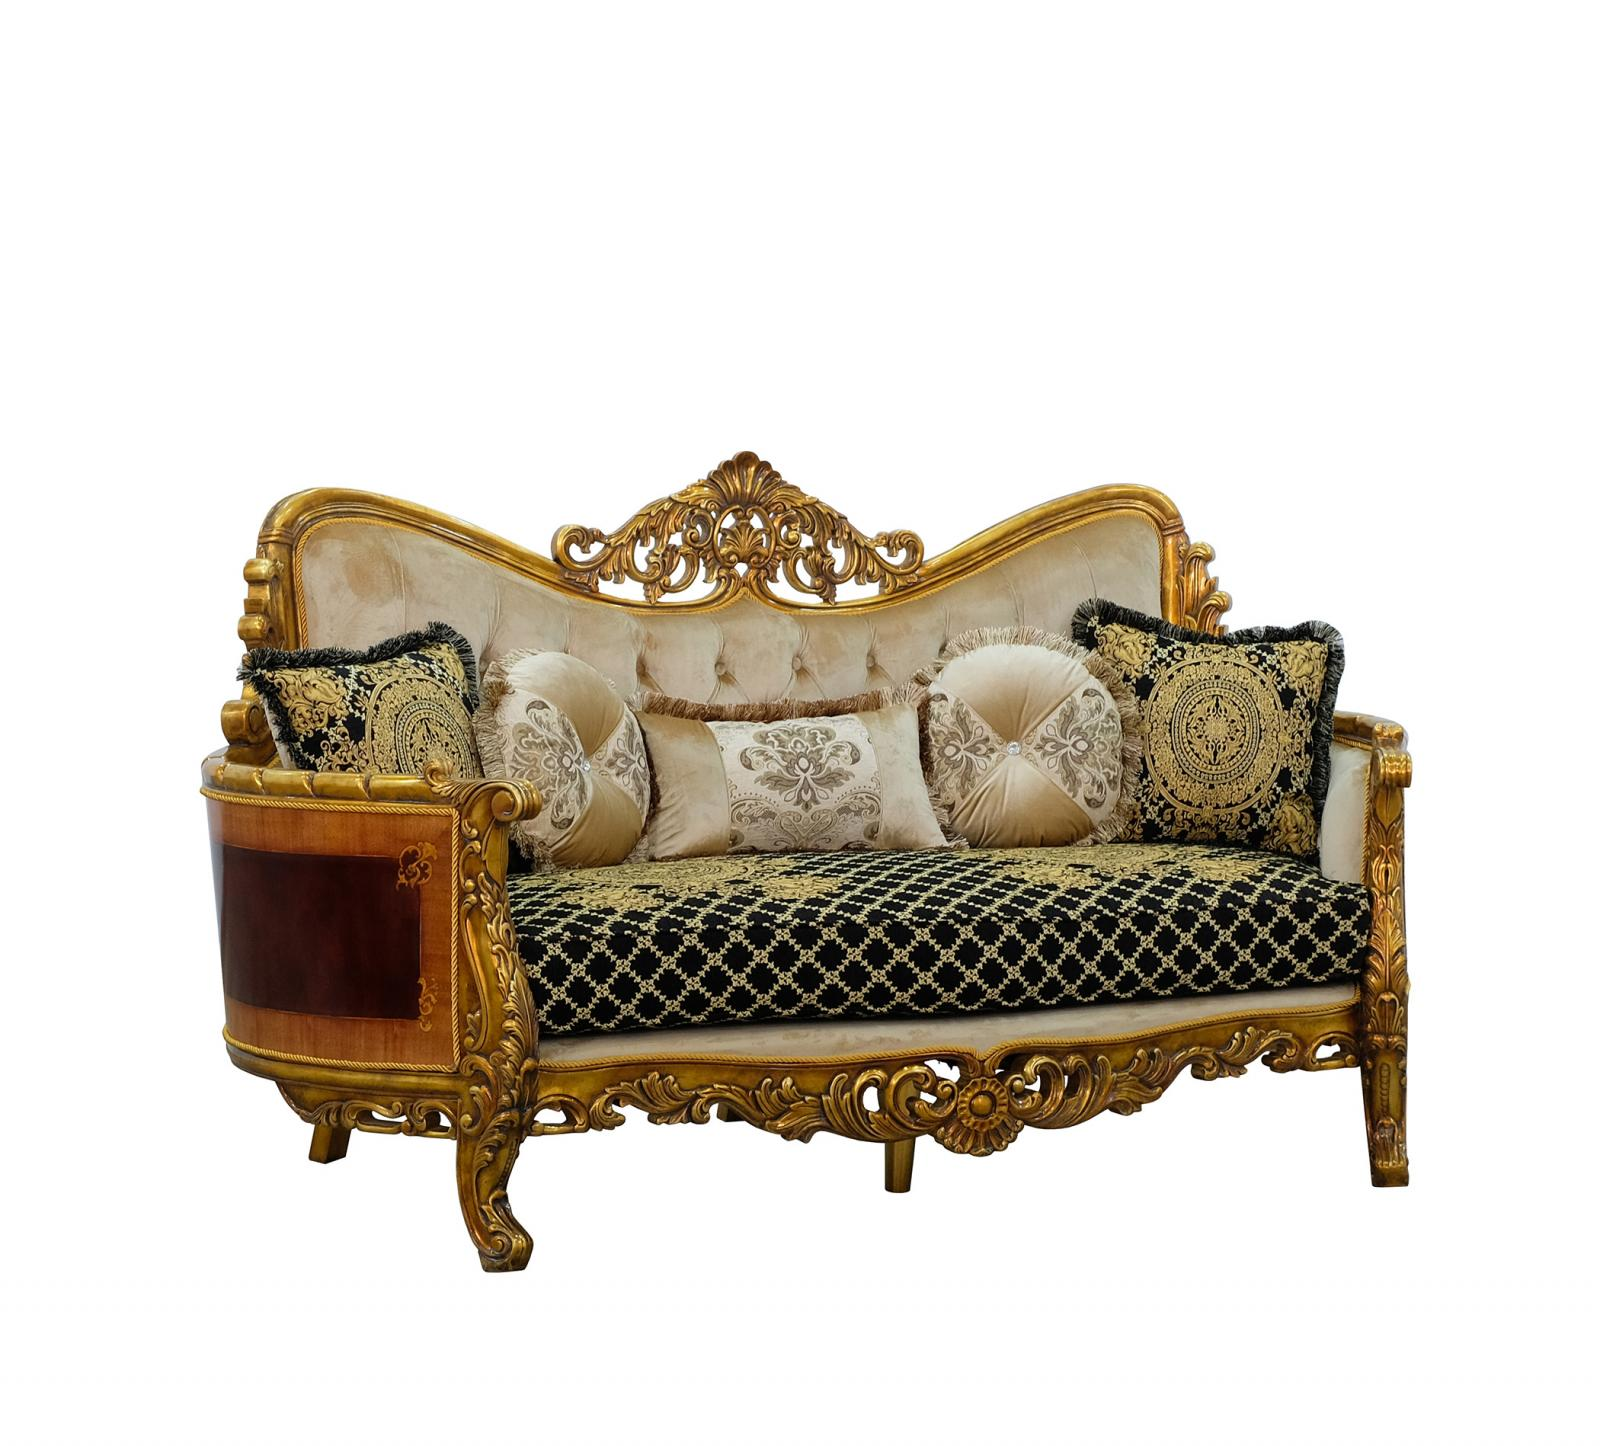 Classic  Traditional Beige  Gold  Antique   Black Wood  Solid Hardwood and Fabric Loveseat EUROPEAN FURNITURE 31059-L